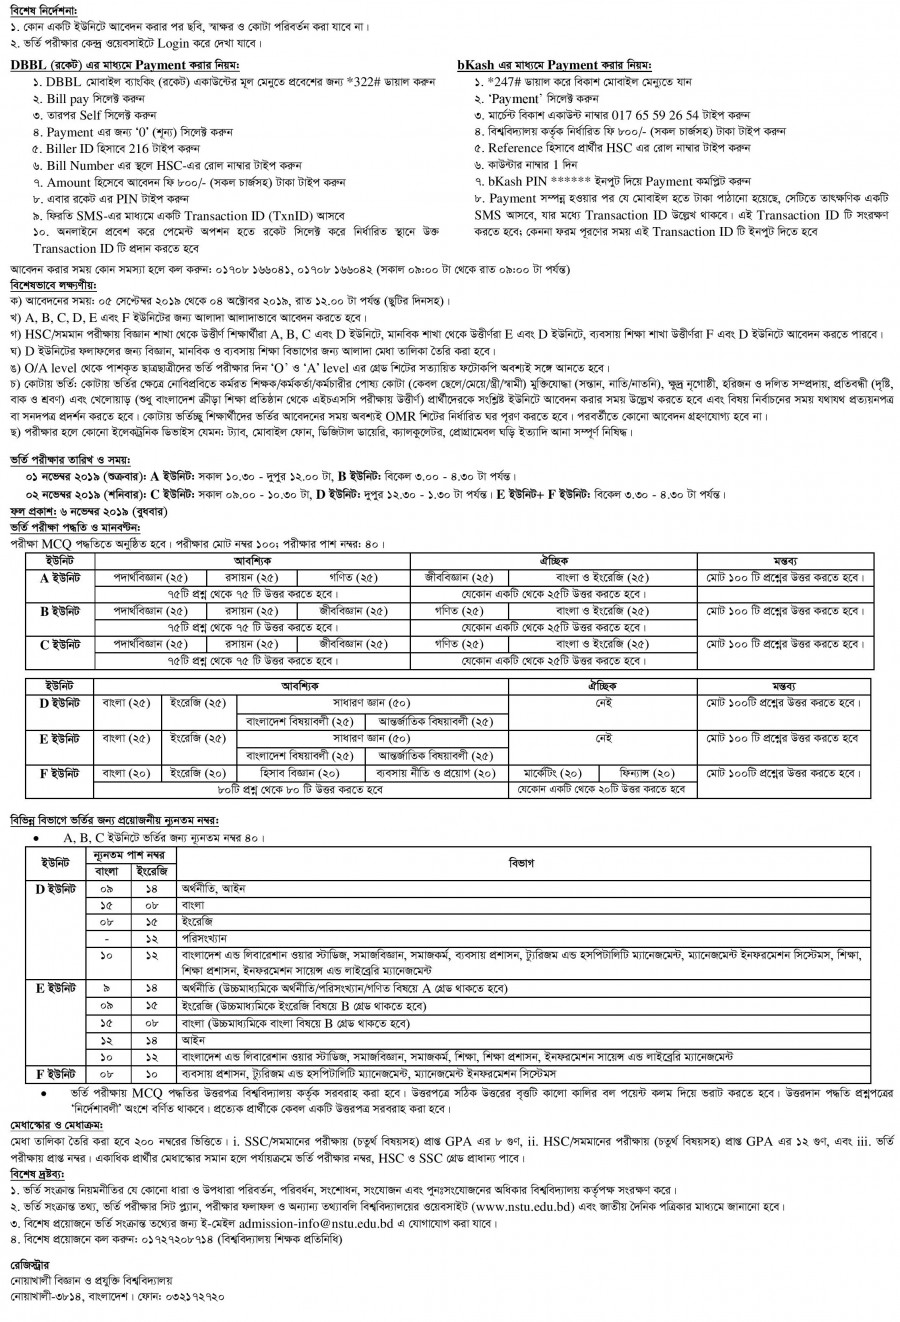 NSTU Admission Result, Admit Card 2019-20 | www nstu edu bd